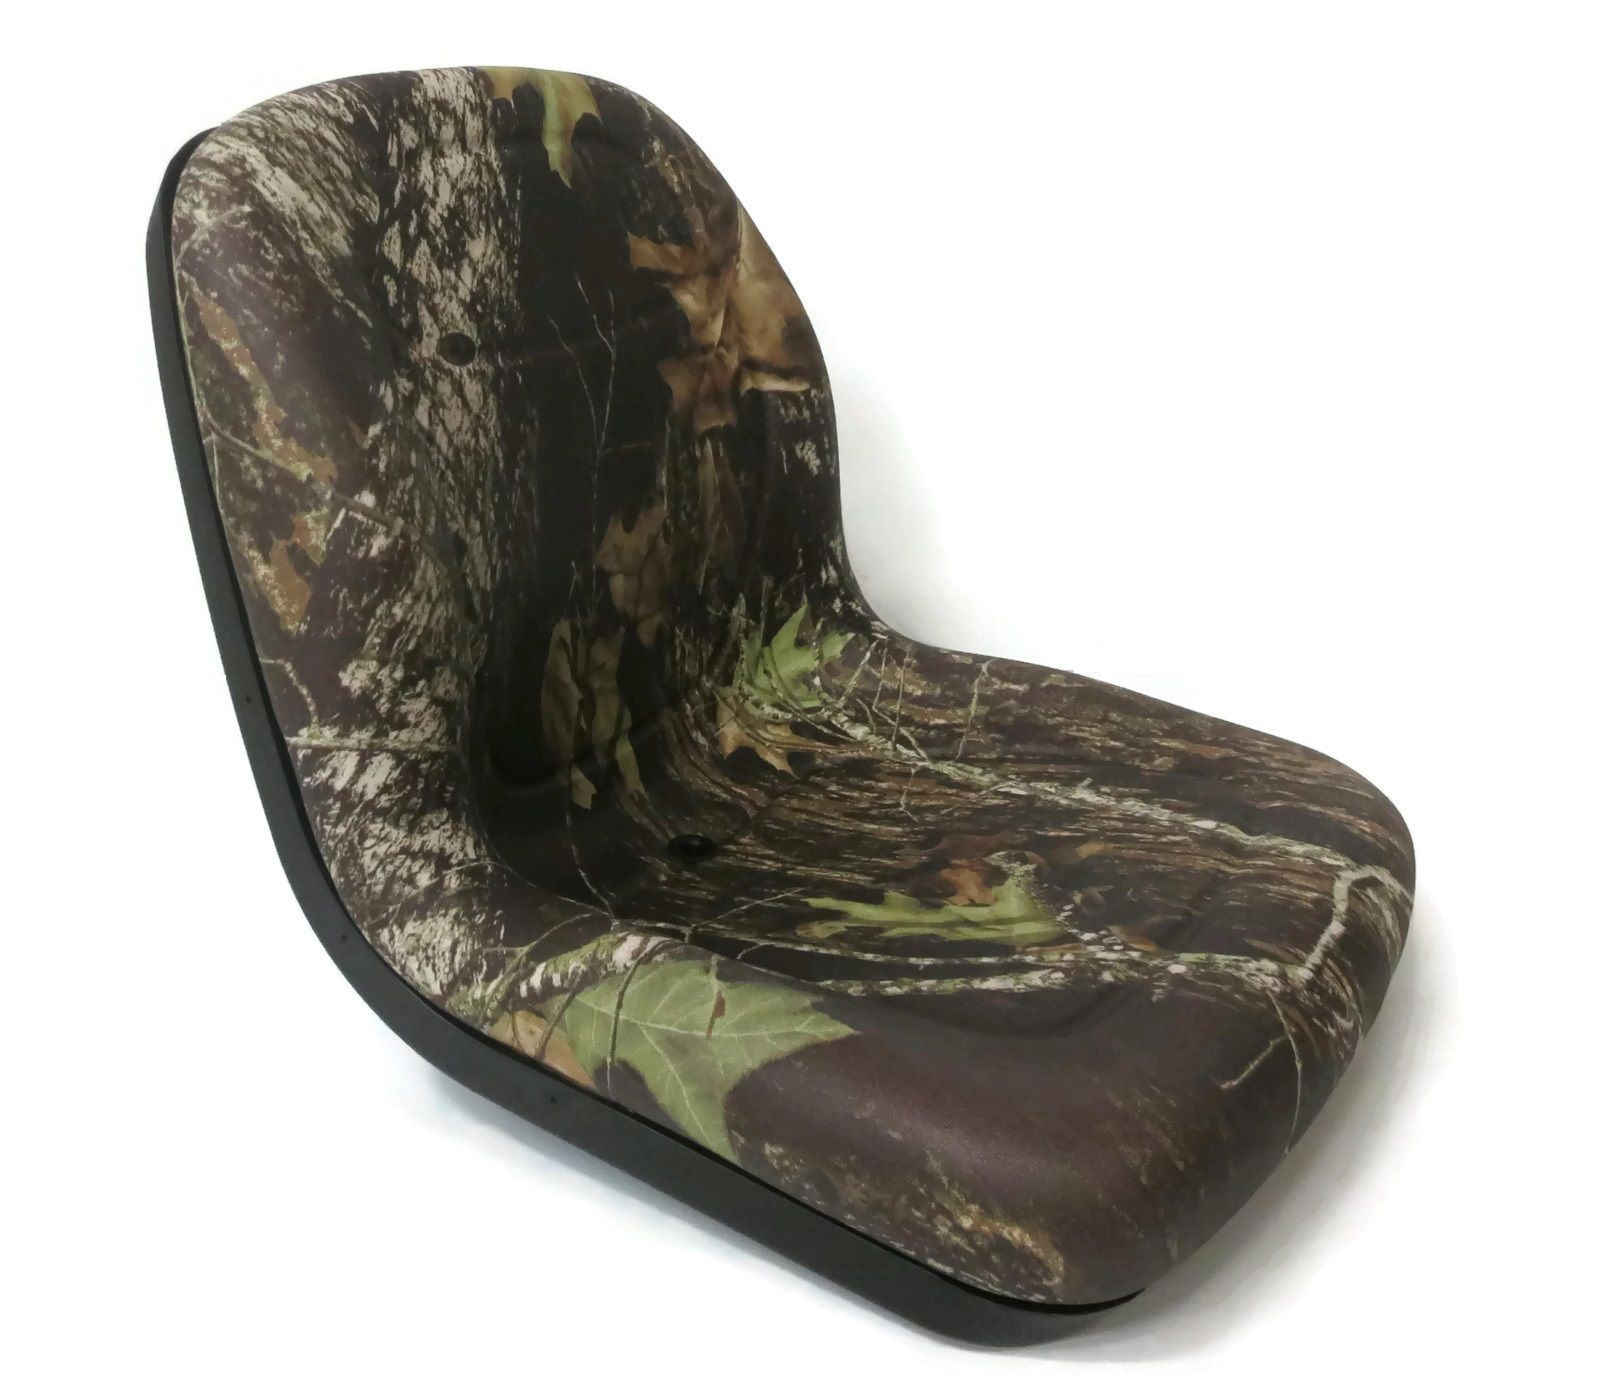 New Camo HIGH BACK SEAT for Scag ZTR Zero Turn Lawn Mower Tractor Made in USA by The ROP Shop by Milsco